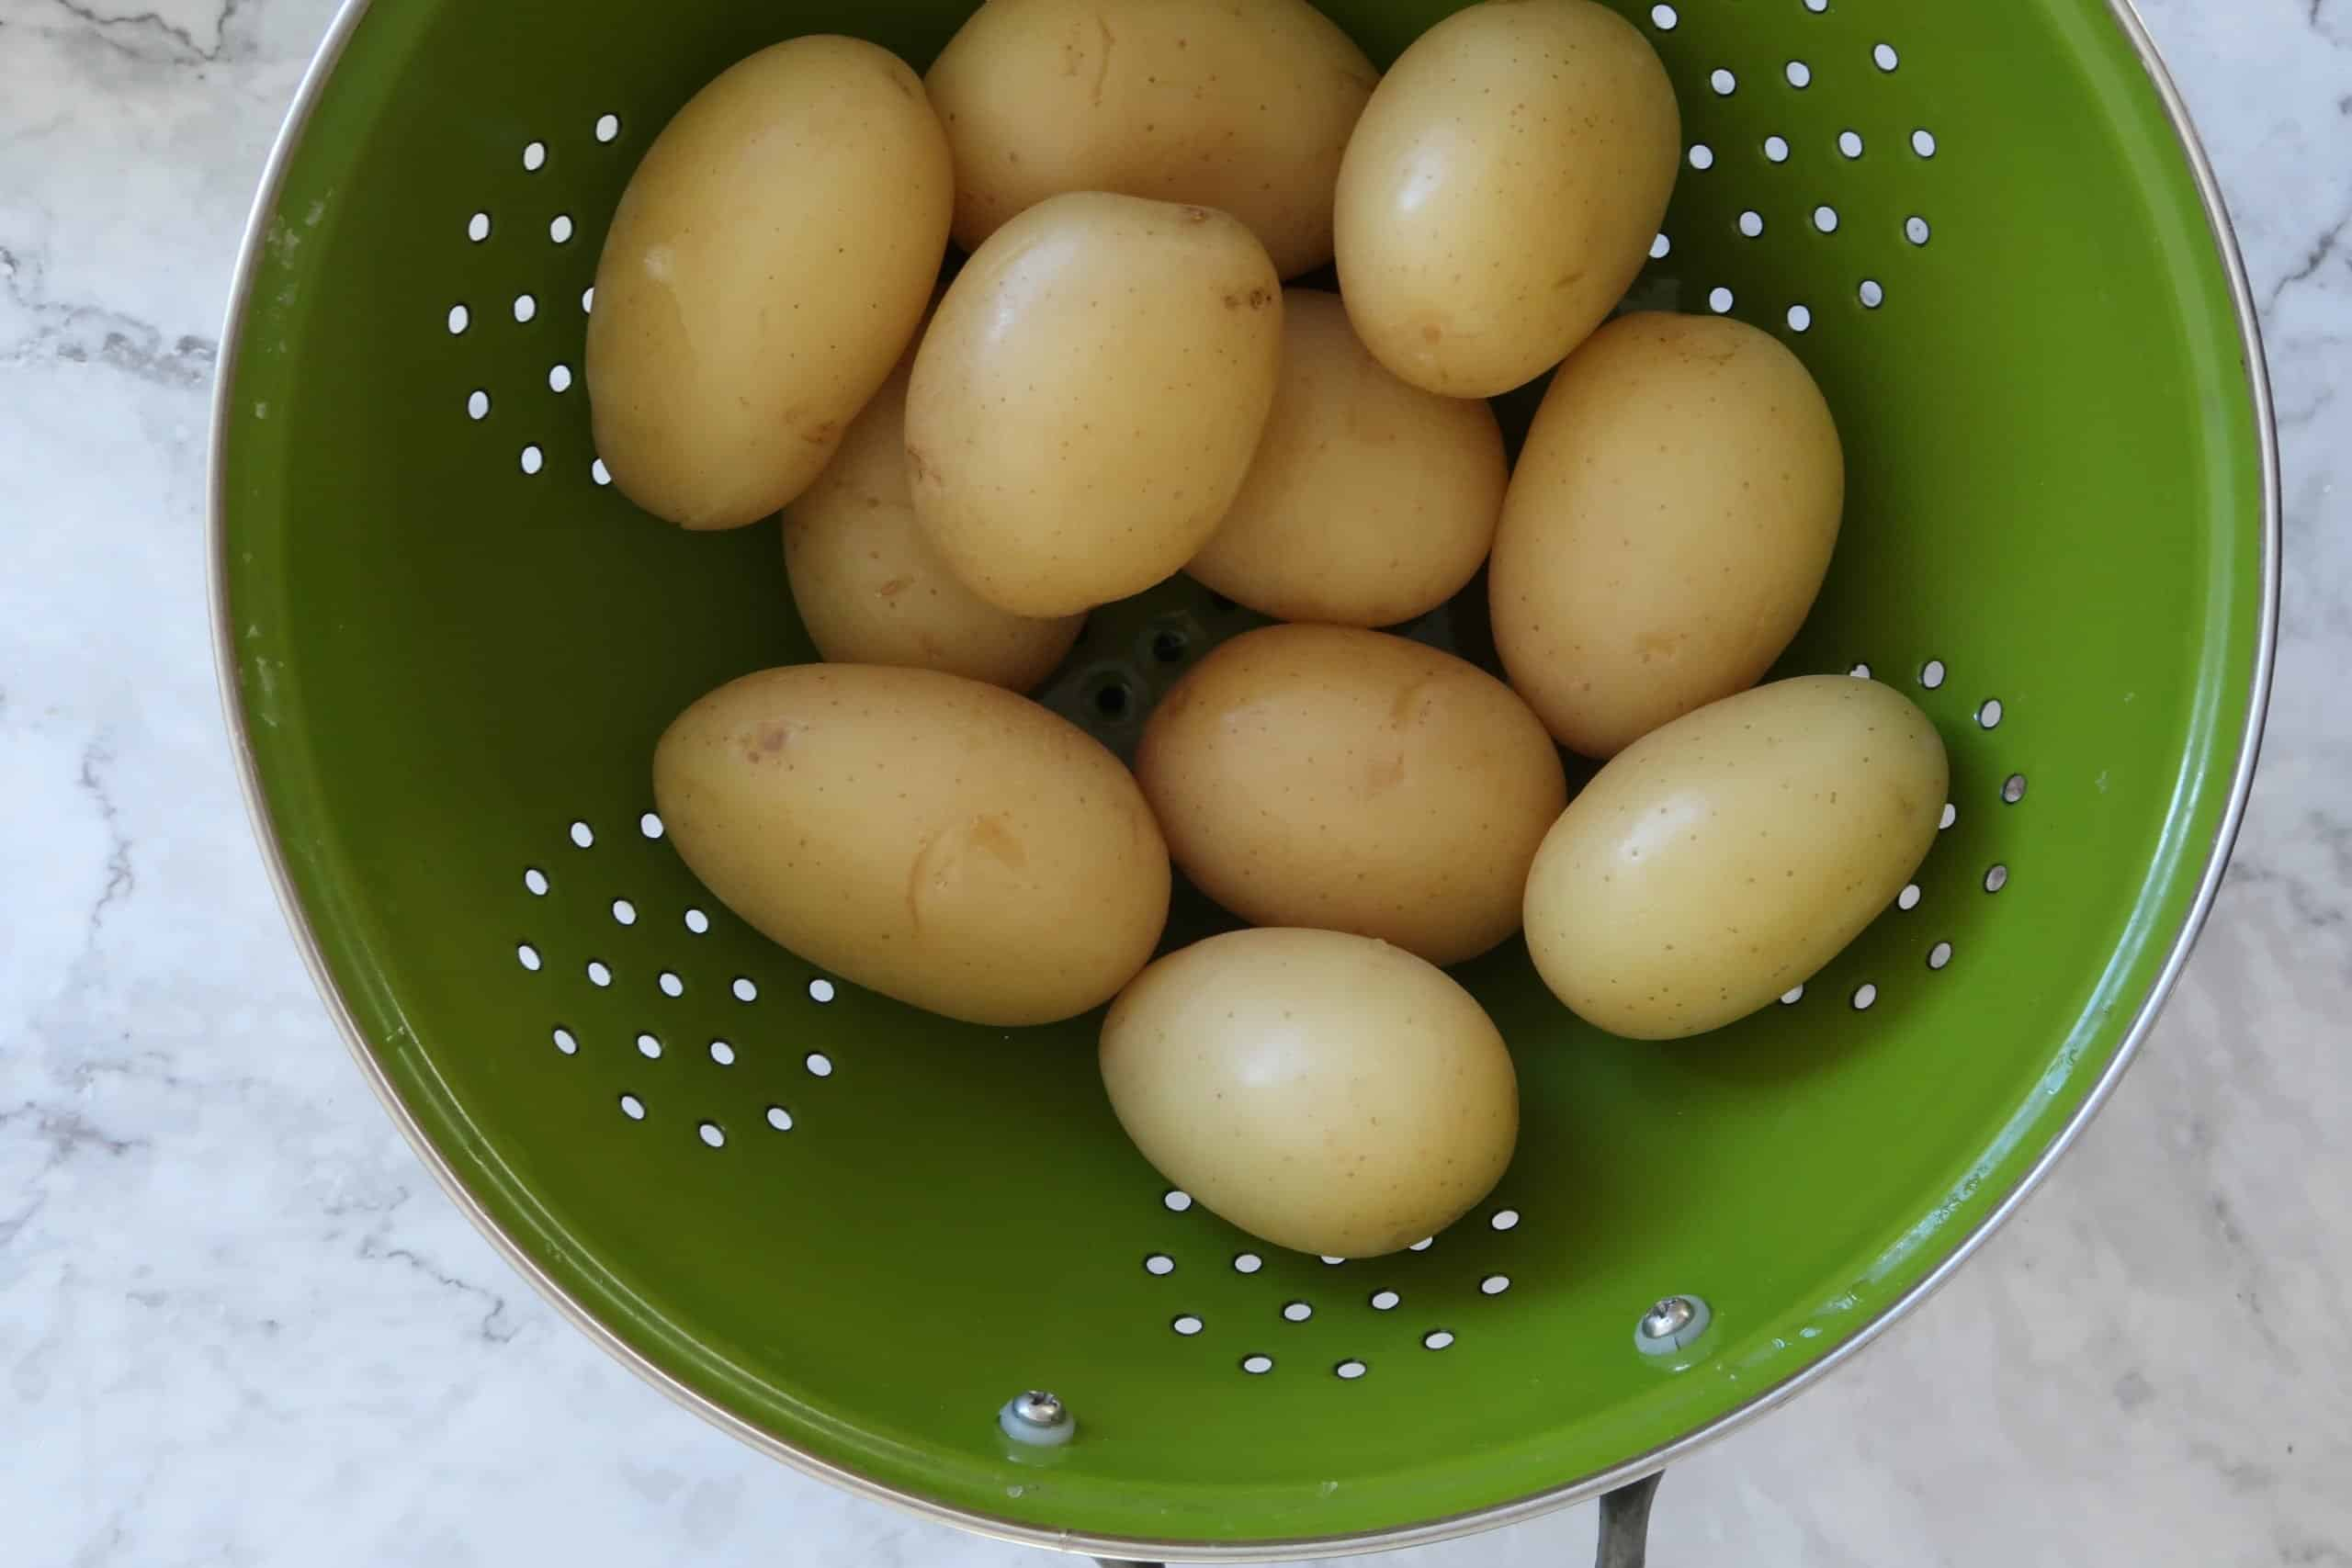 crispy smashed potatoes boiled and strained in a green colander ready to smash